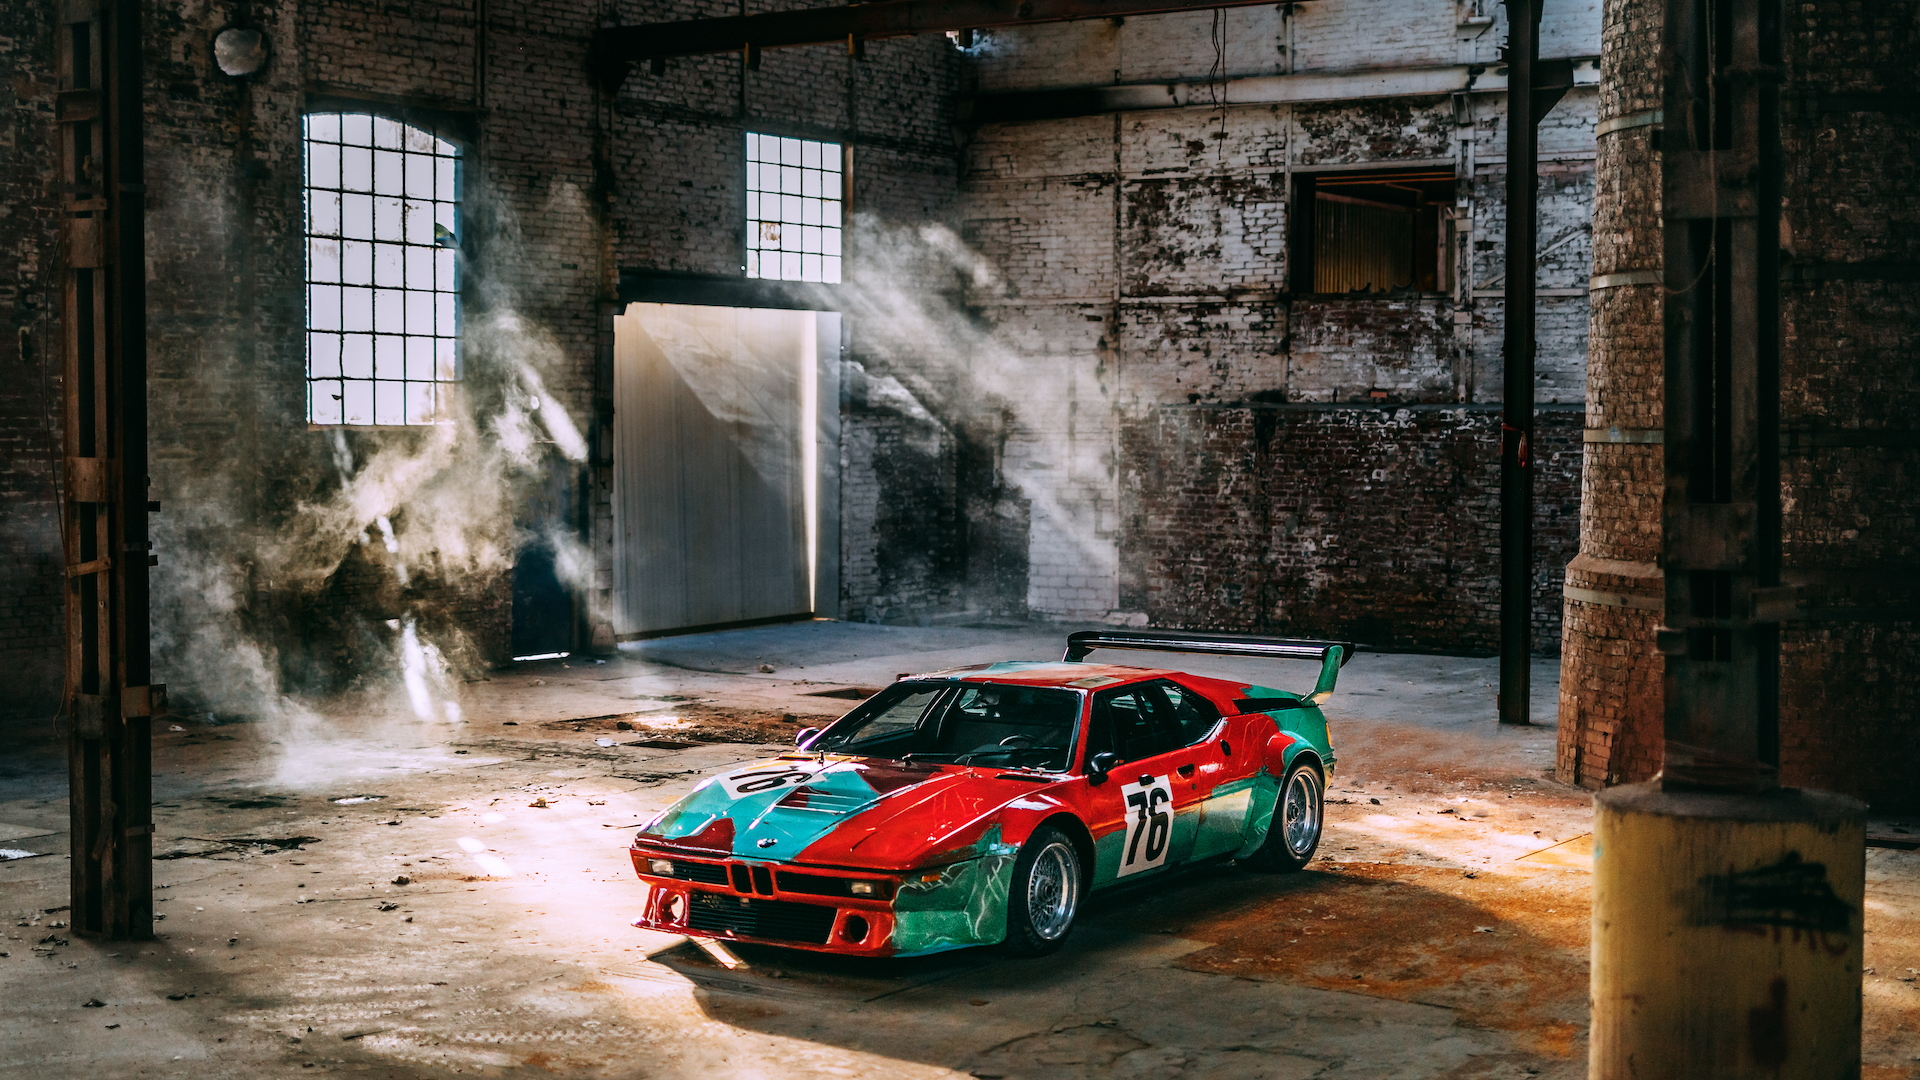 Andy Warhol BMW M1 Art Car turns 40 years old